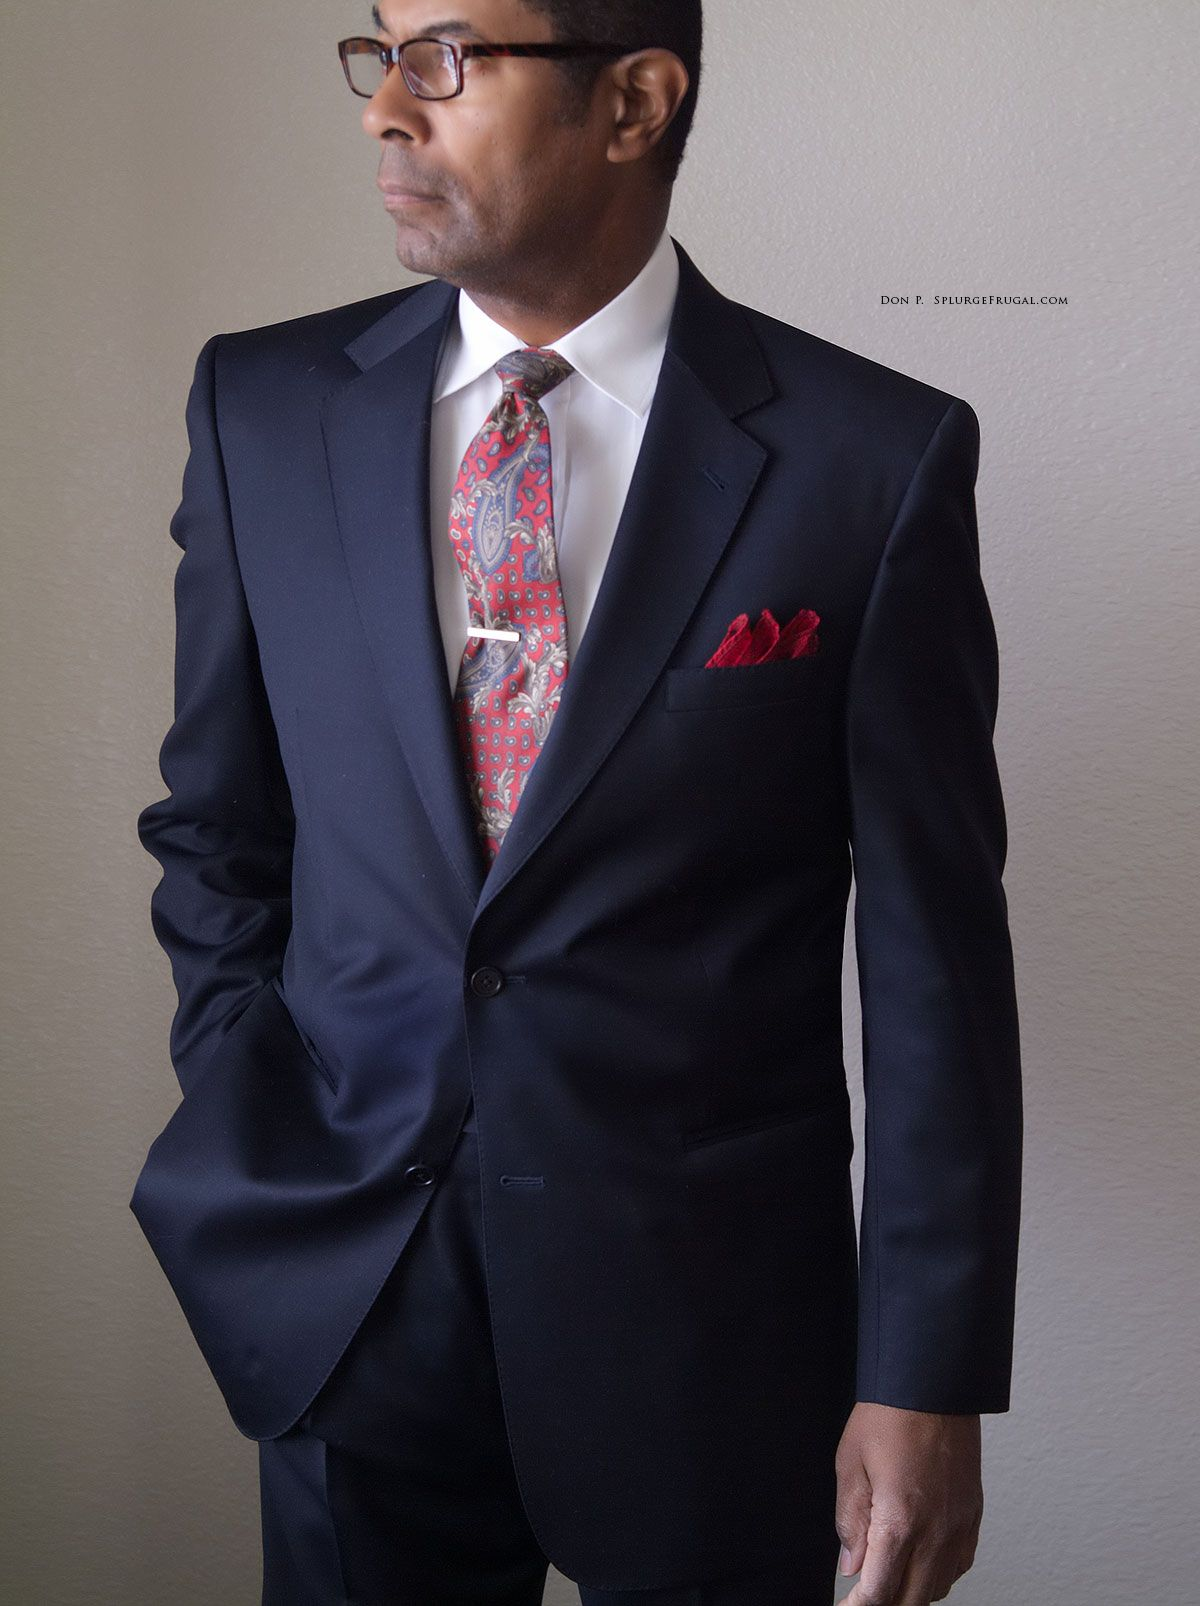 Are Jos. A Bank Suits a Good Buy Suits, Fashion, Man